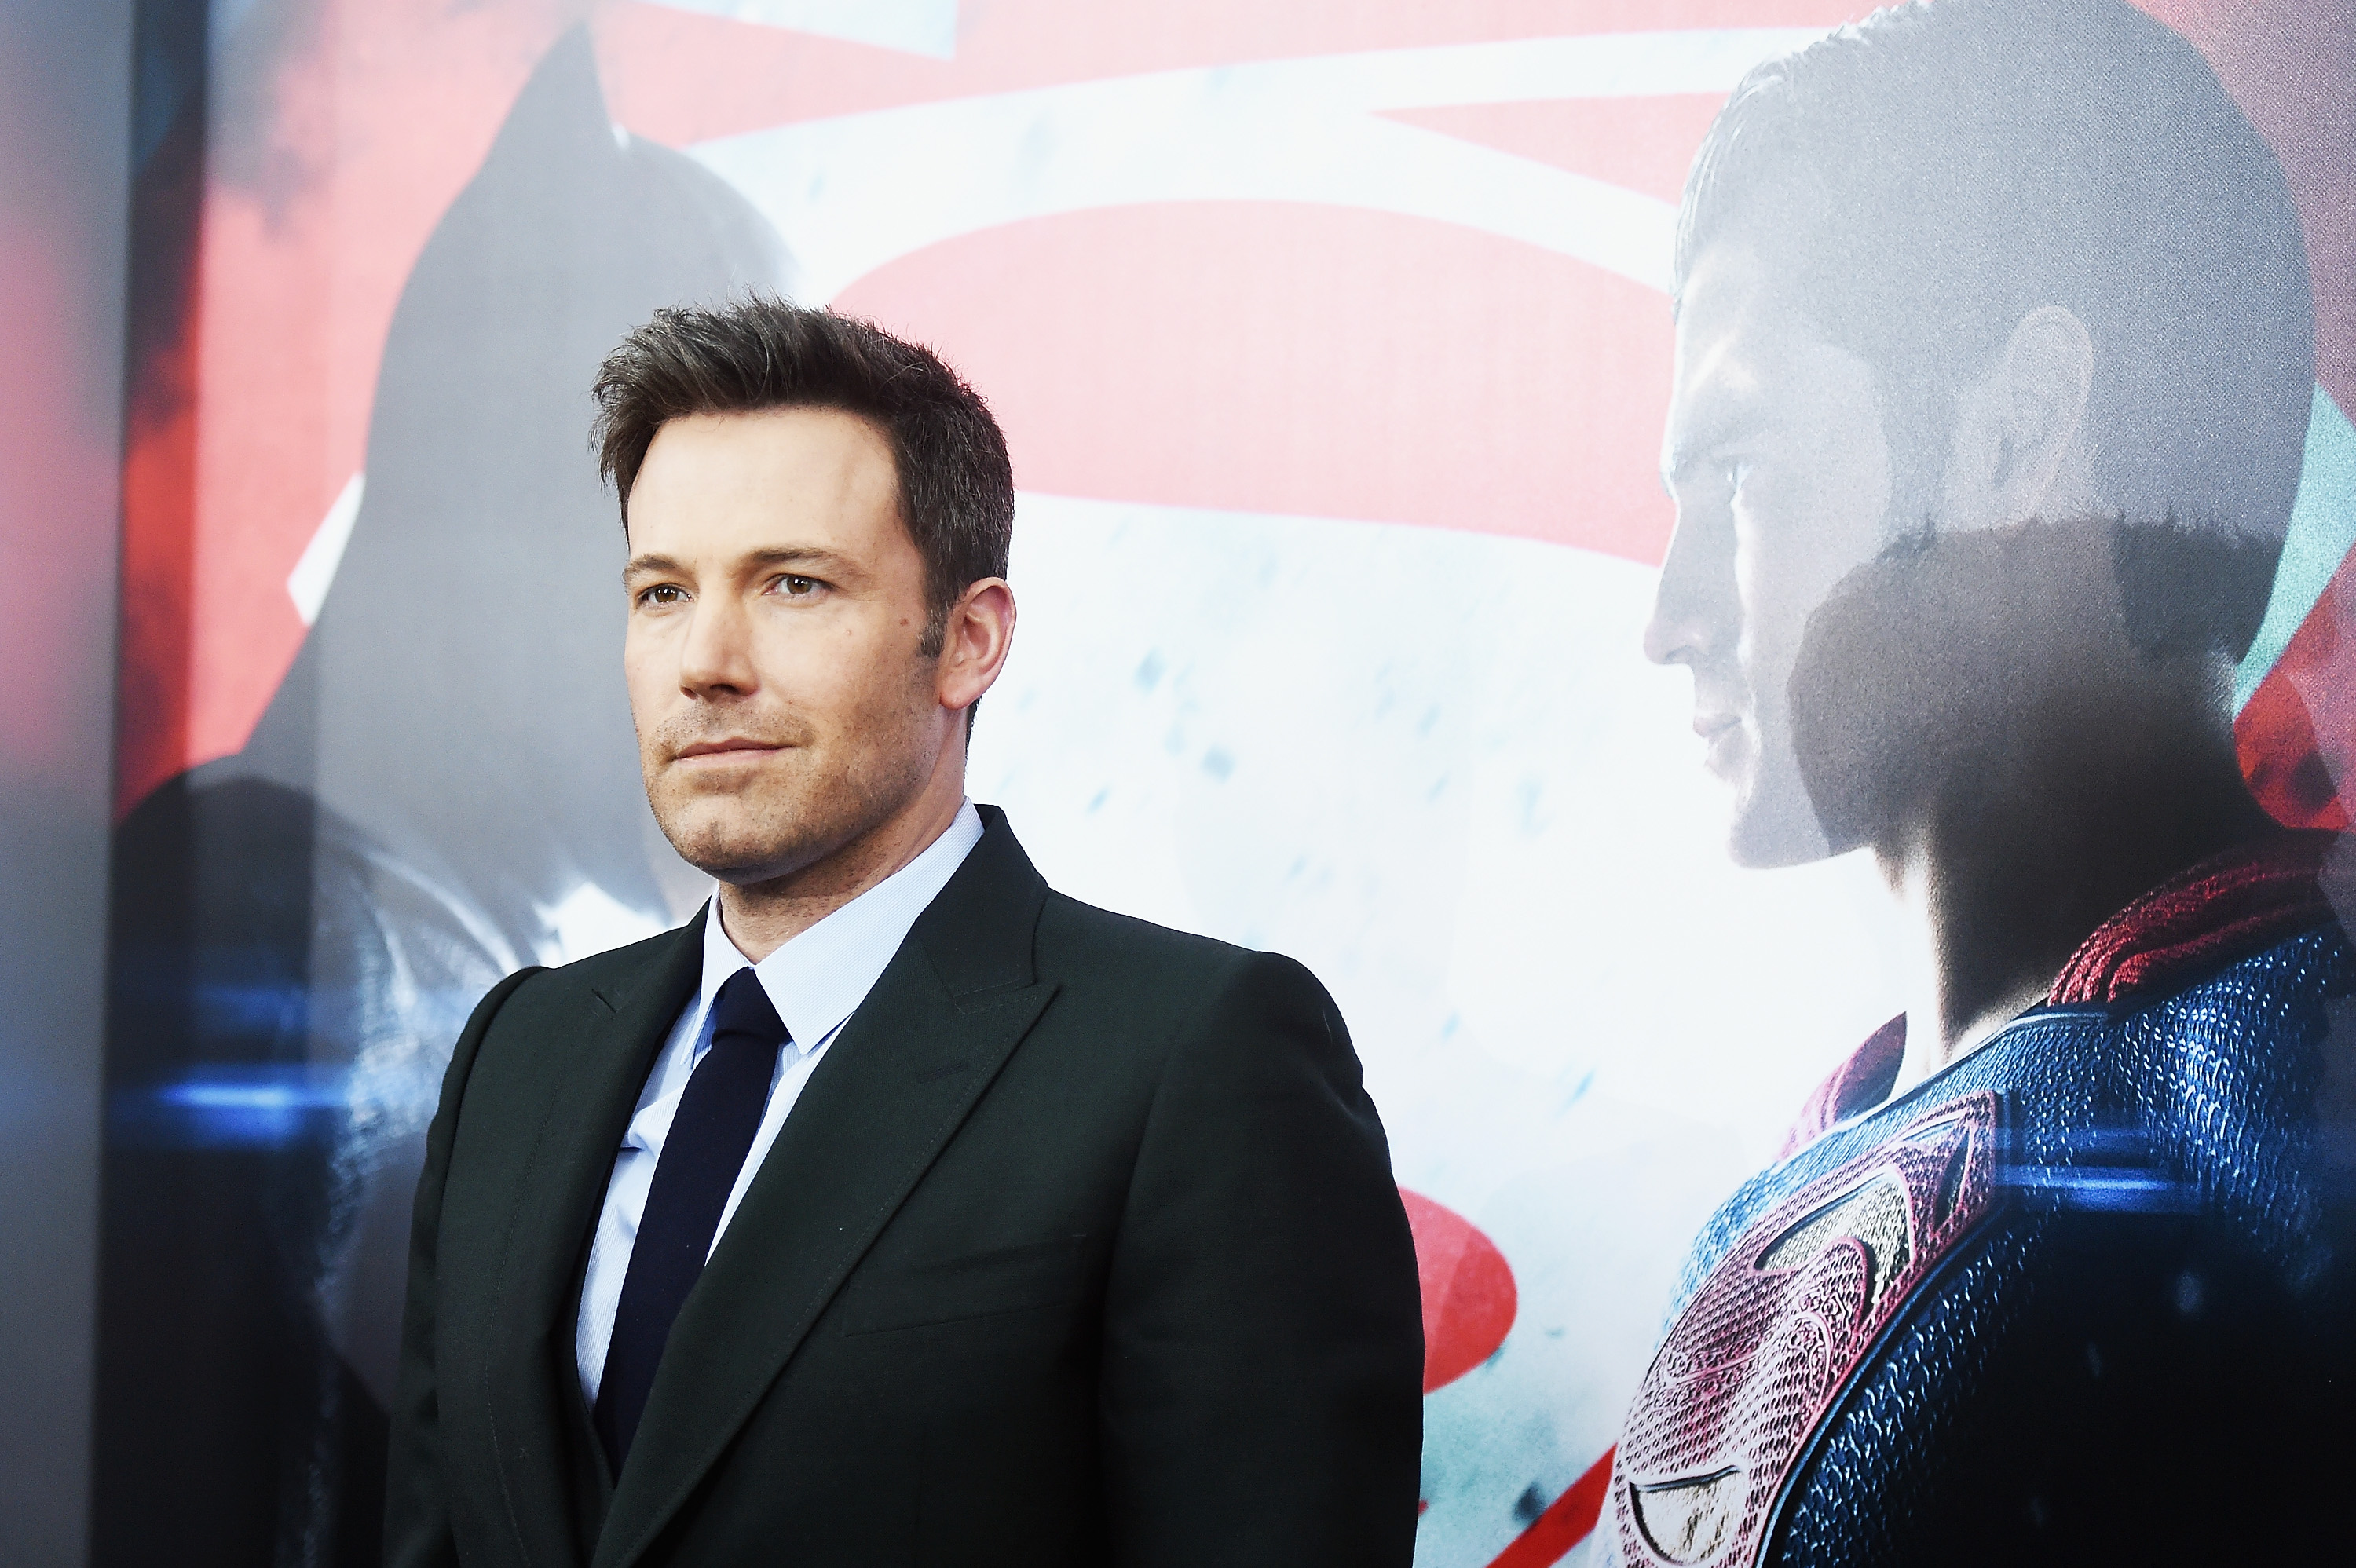 """Actor Ben Affleck attends the """"Batman V Superman: Dawn Of Justice"""" New York Premiere at Radio City Music Hall on March 20, 2016 in New York City. (Photo by Jamie McCarthy/Getty Images)"""